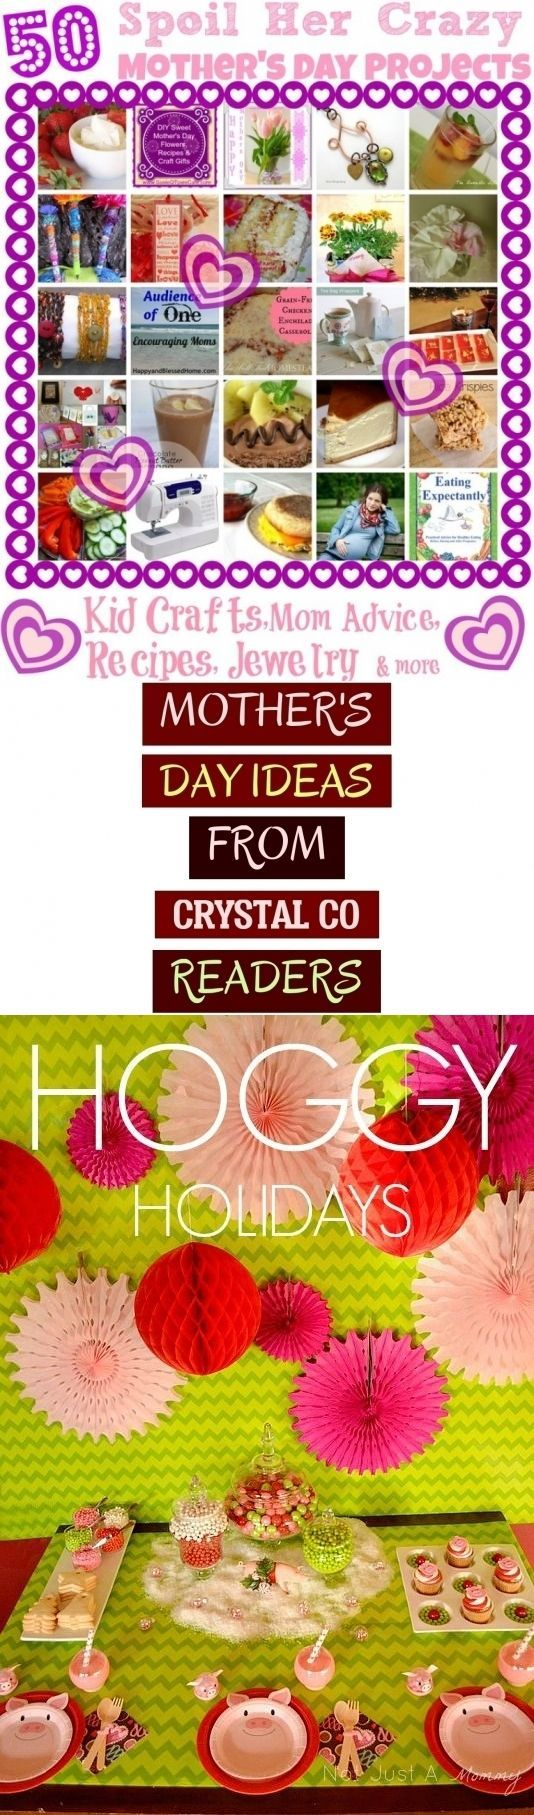 Mother's Day Ideas From Crystal Co Readers - muttertagsideen von crystal co readern #crazyhatdayideas Mother's Day Ideas From Crystal Co Readers - muttertagsideen von crystal co readern #crazyhatdayideas